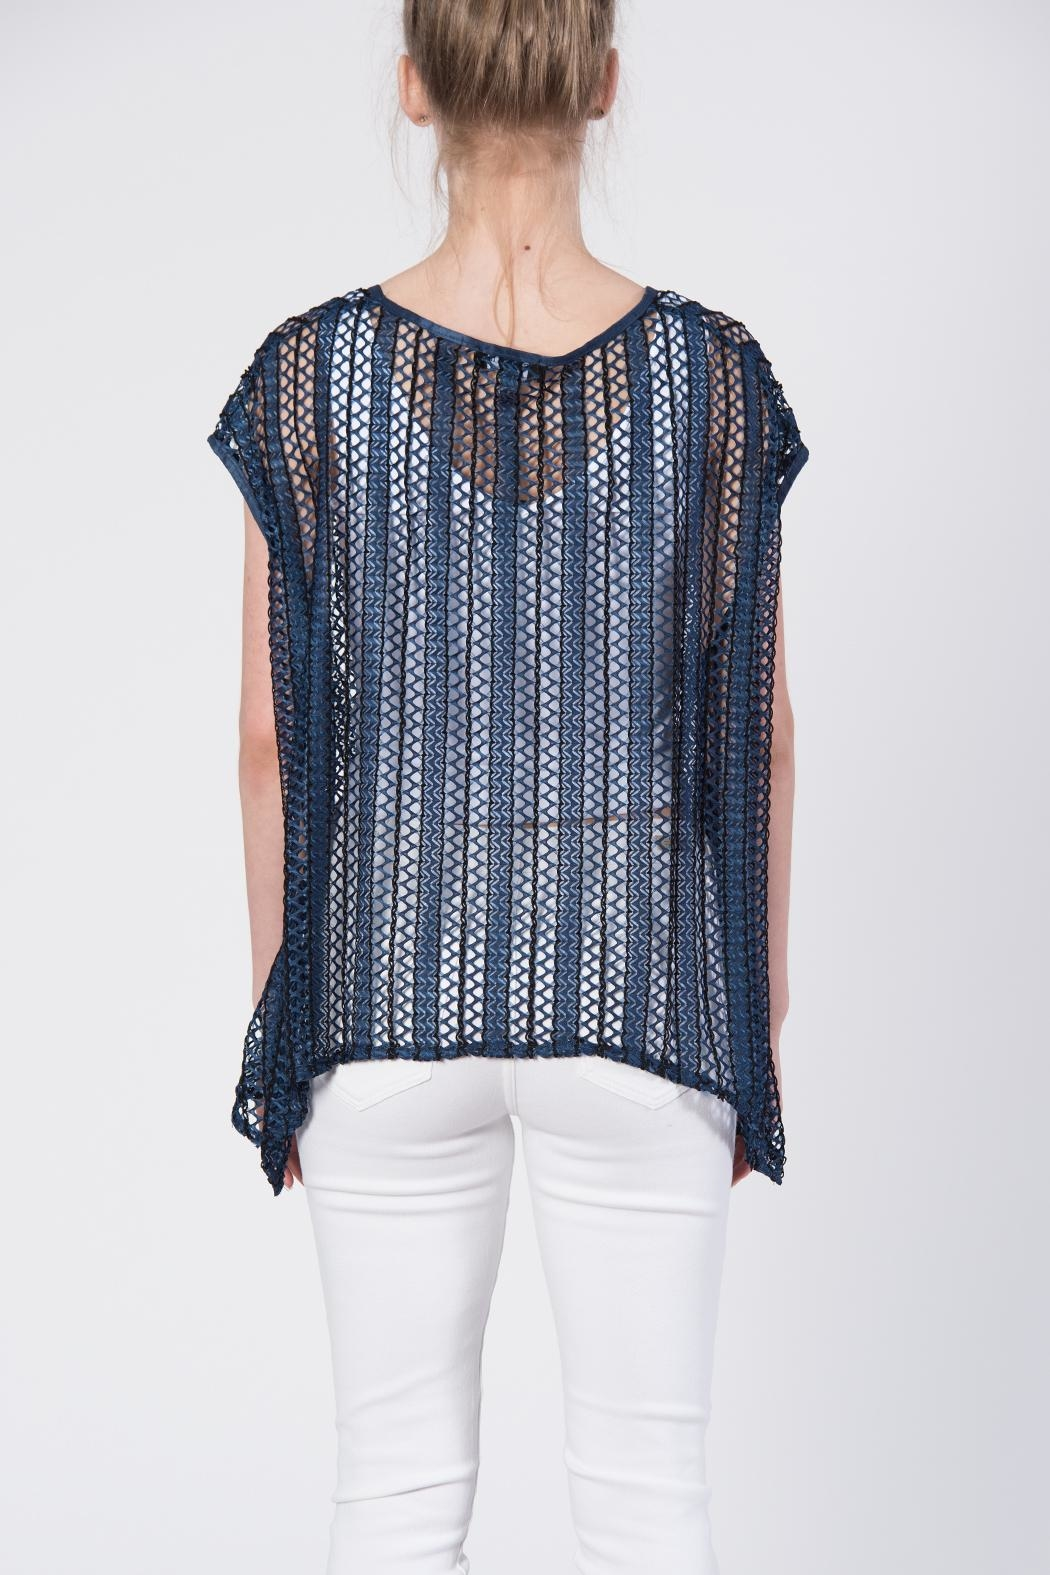 beulah Sheer Knit Top - Side Cropped Image